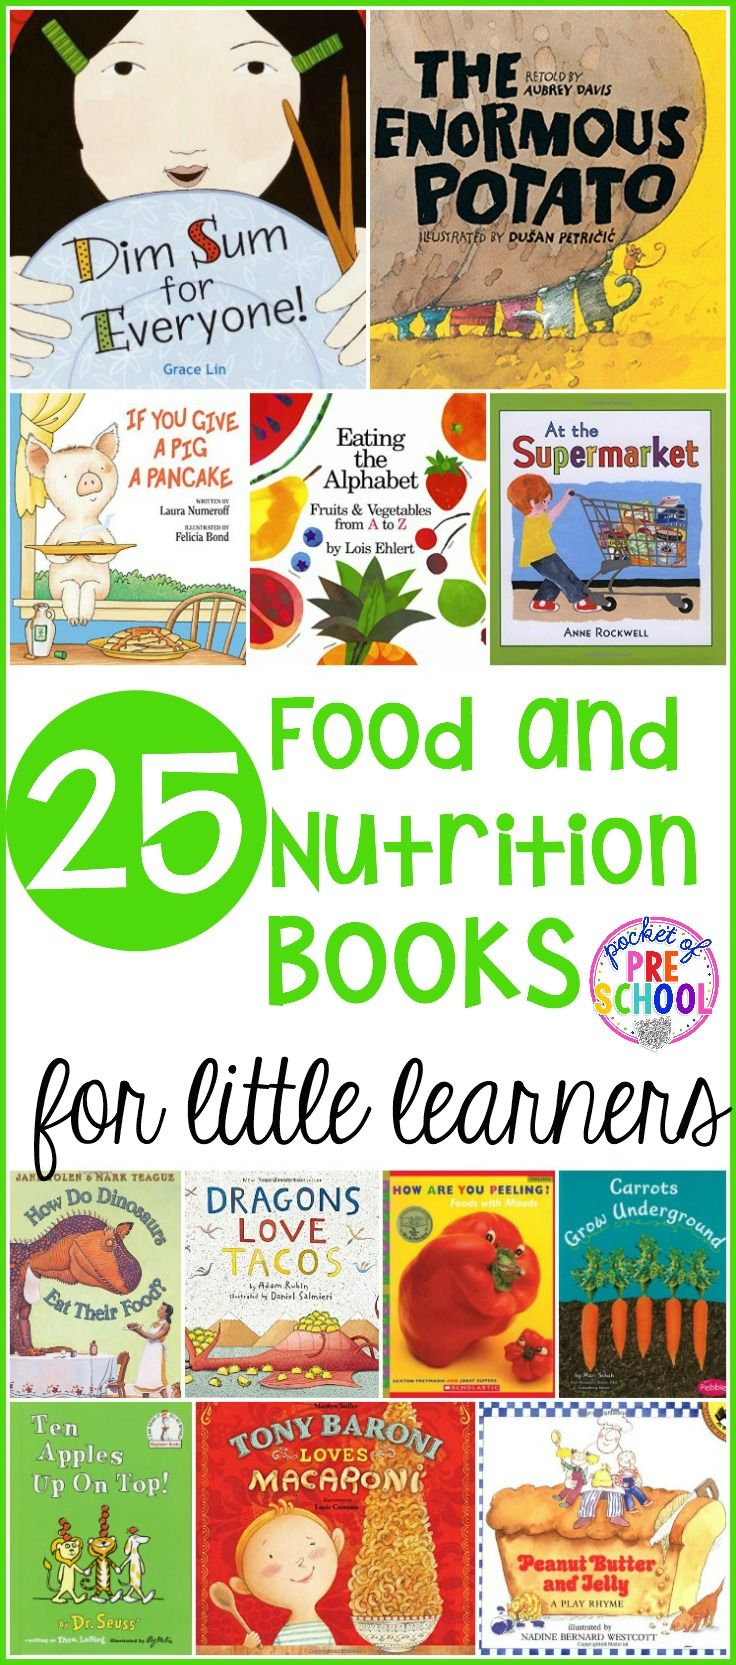 Food and nutrition books for little learners preschool